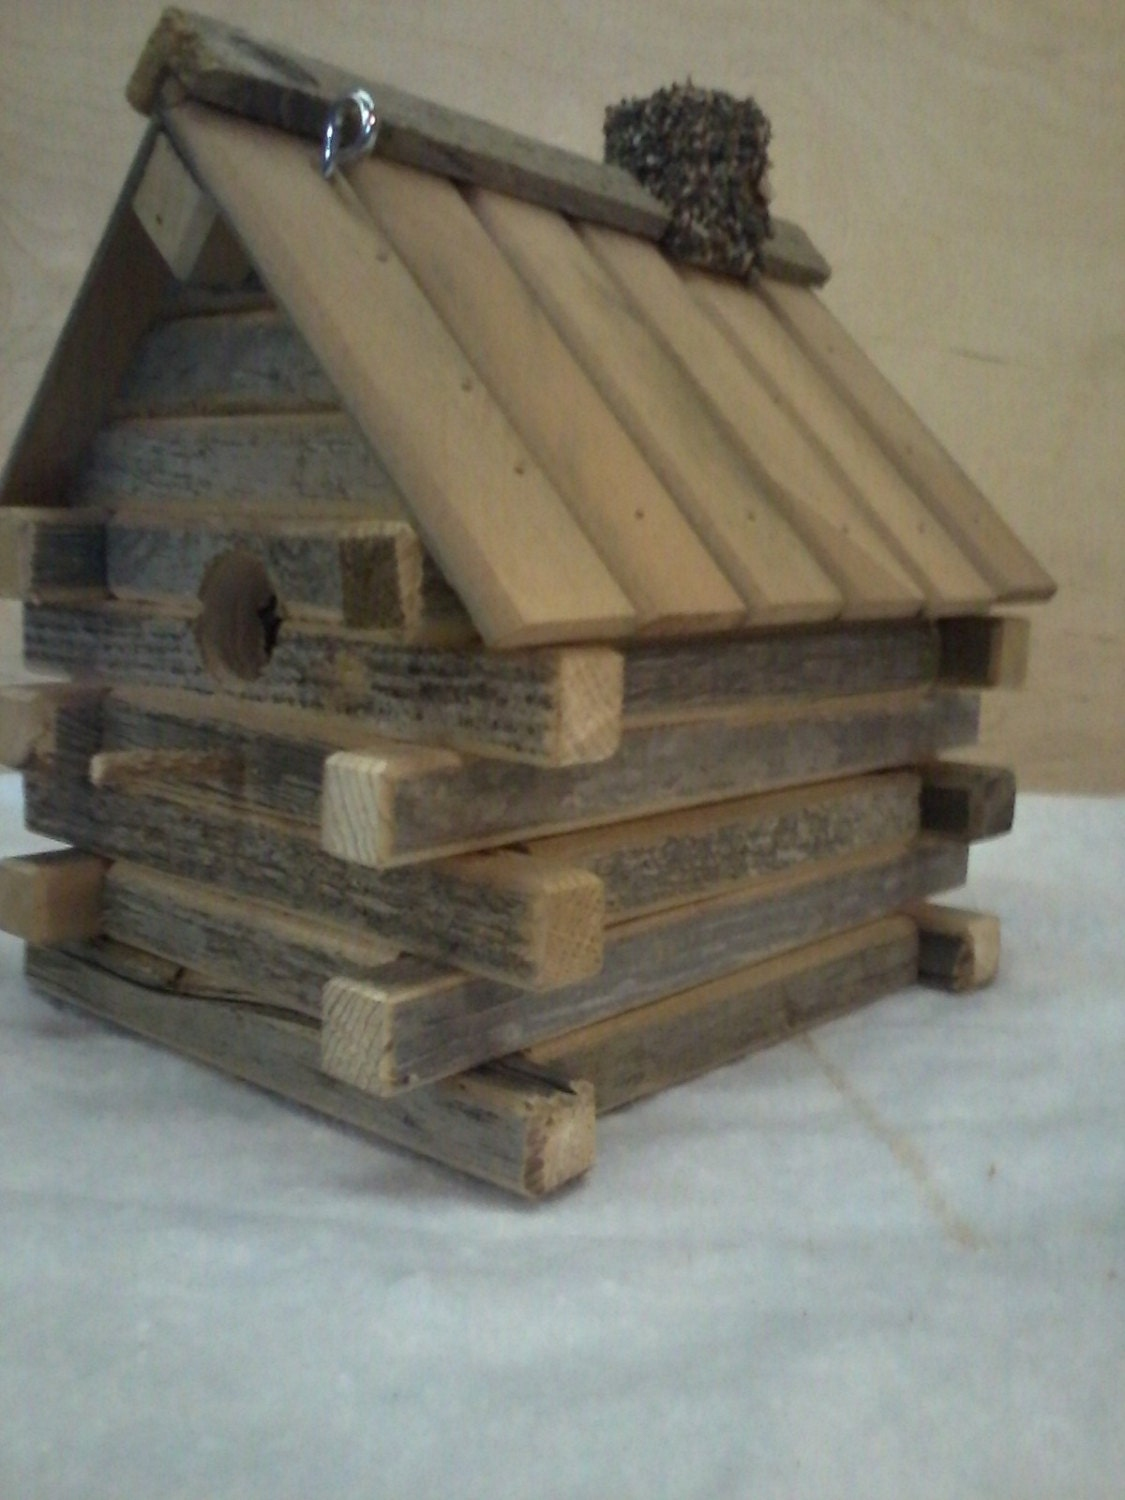 Marvelous photograph of Log Cabin Birdhouse by TheRolfzenPlace on Etsy with #6D614C color and 1125x1500 pixels